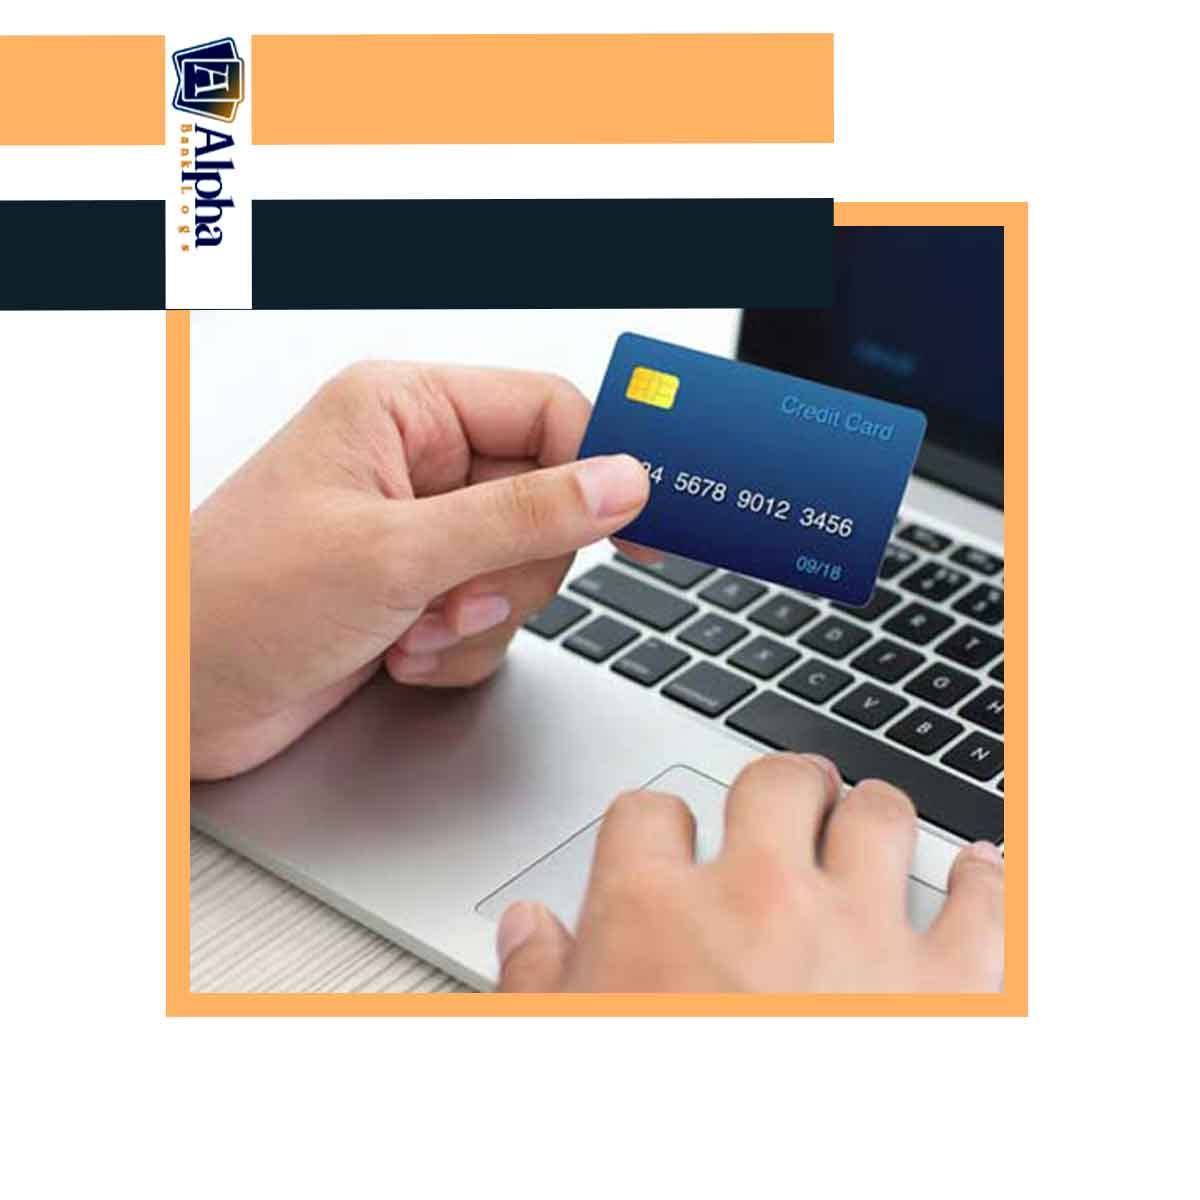 Ultra High Quality AU VISA CC 100% Live And Fresh with All User Data Including IP Adress